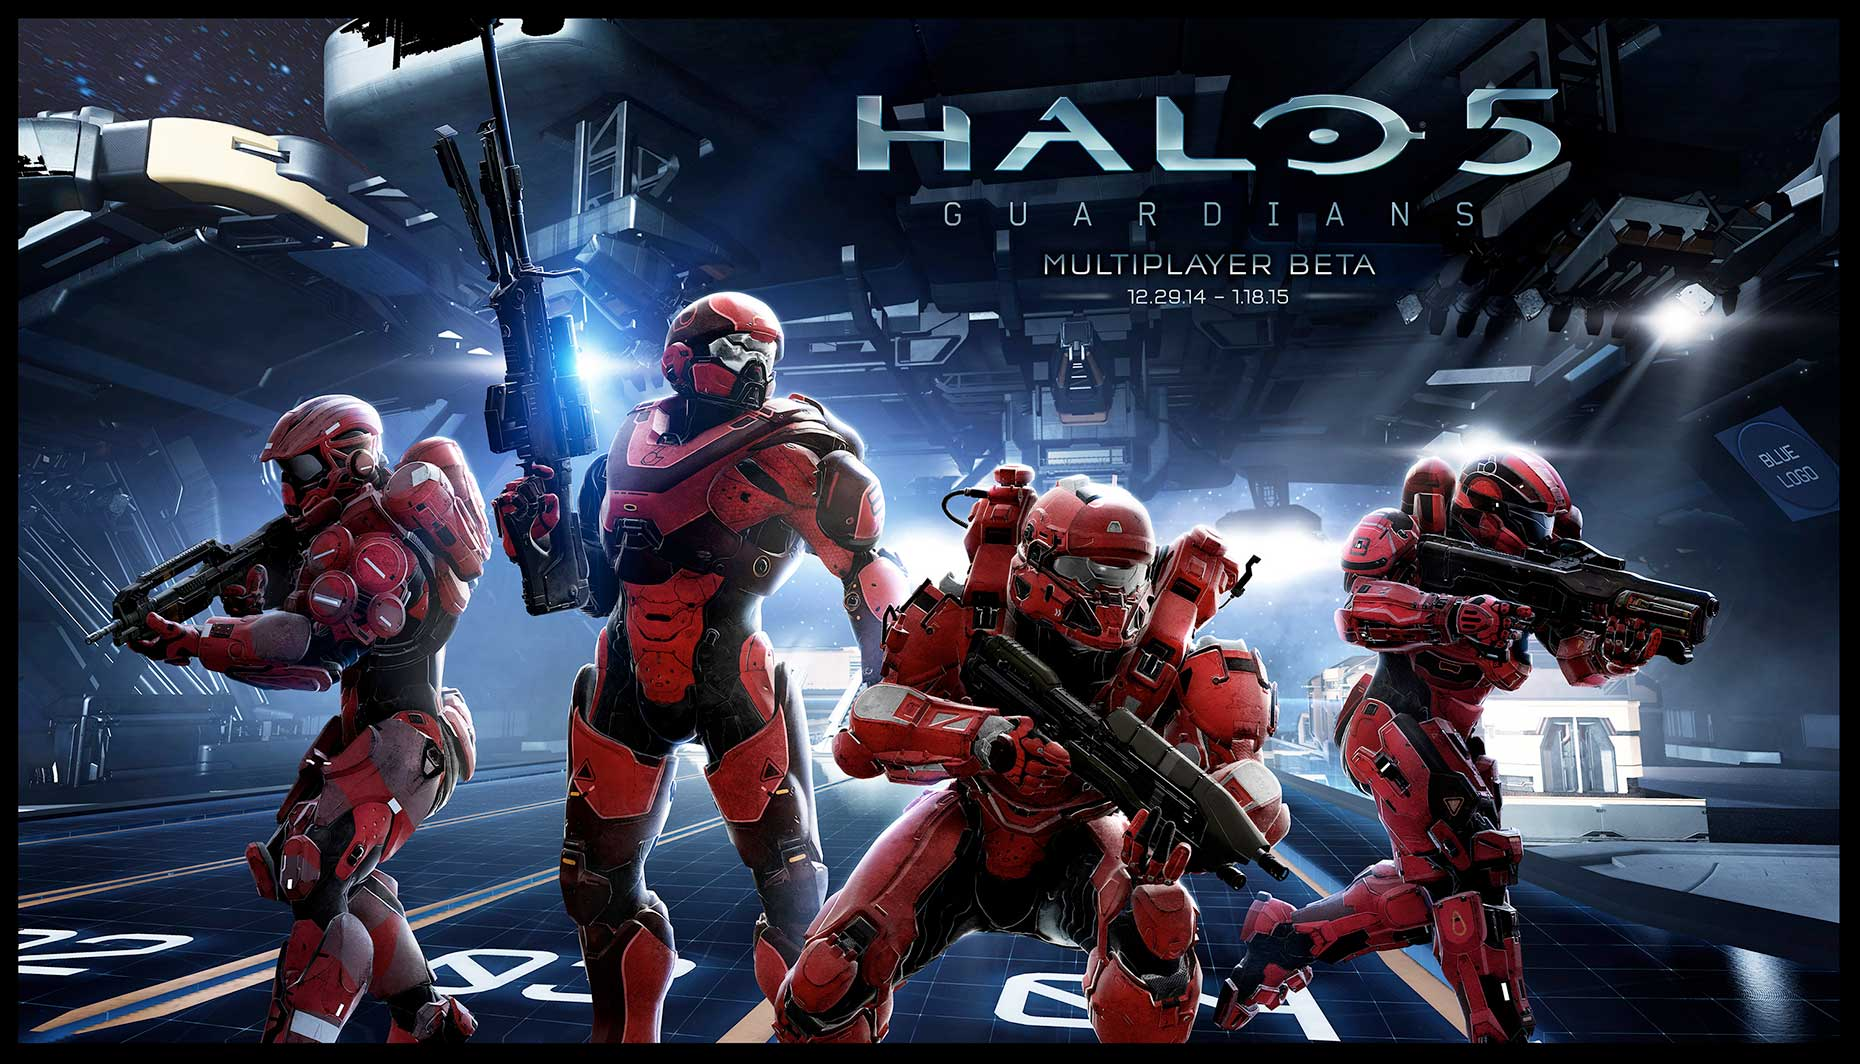 halo 5 guardians key art red characters in action